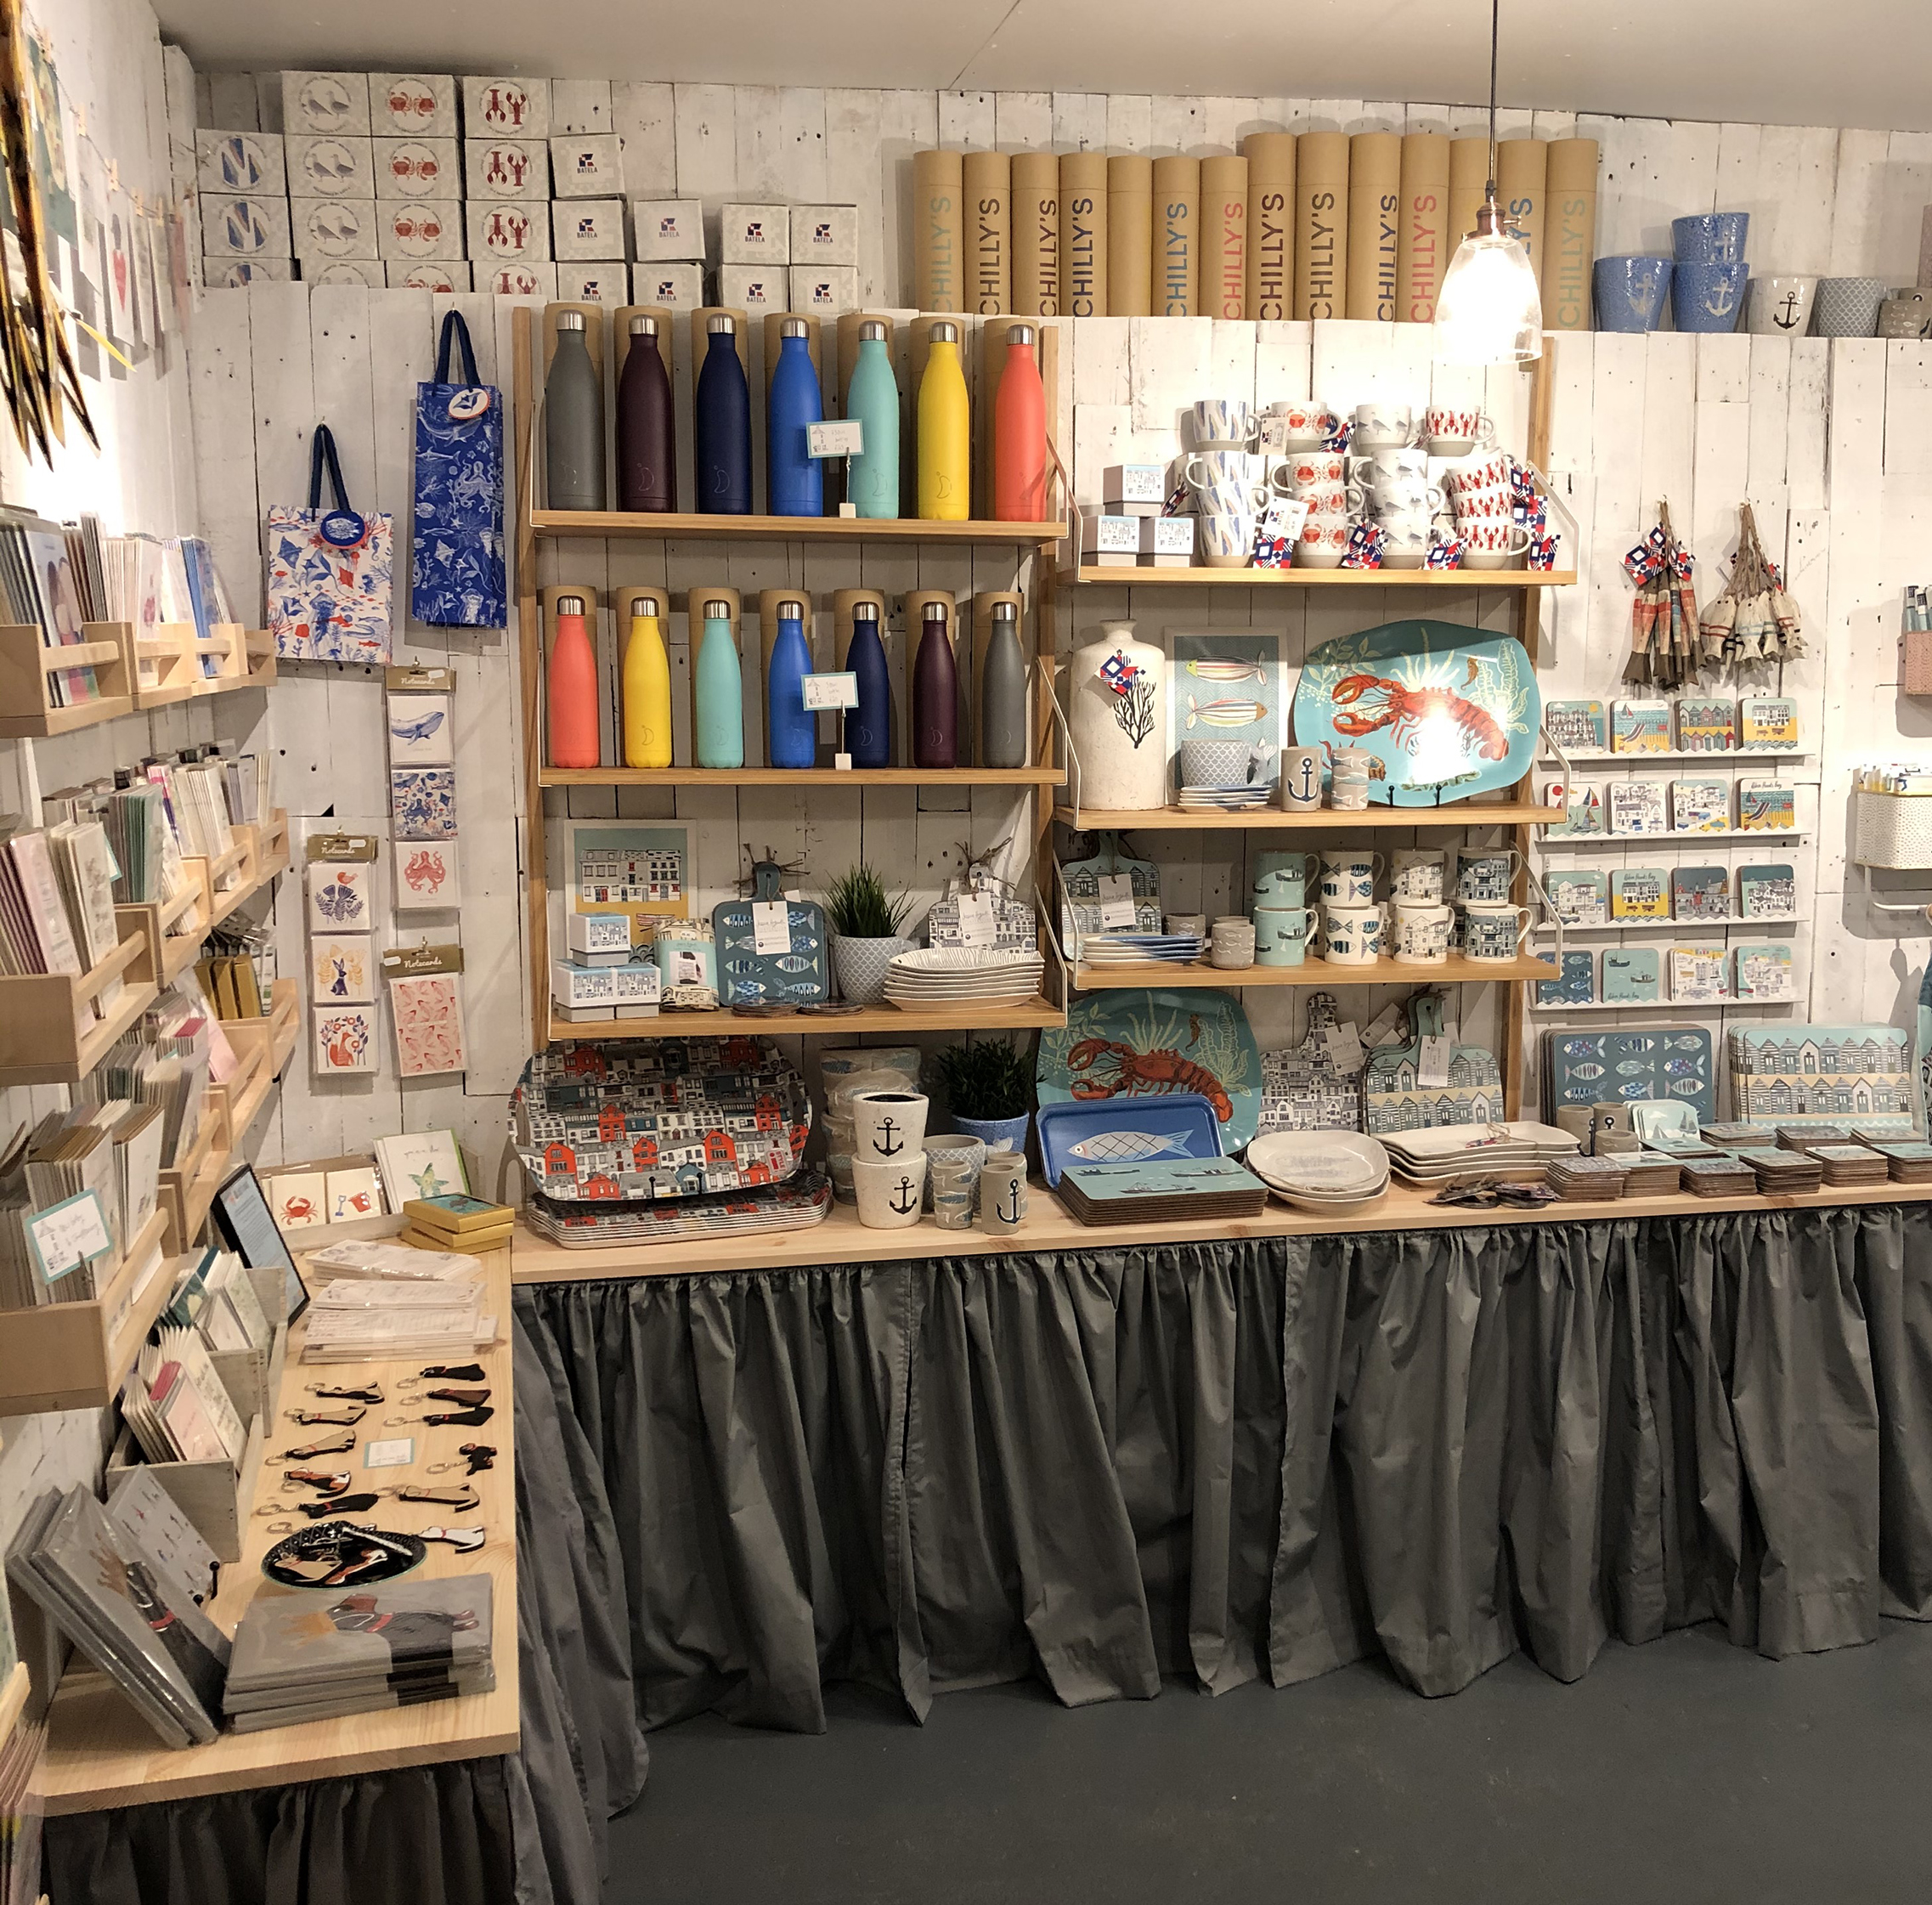 Above: The new Jessica Hogarth shop offers an array of cards, homewares and gifts, including products featuring the owner's distinctive illustrative style.